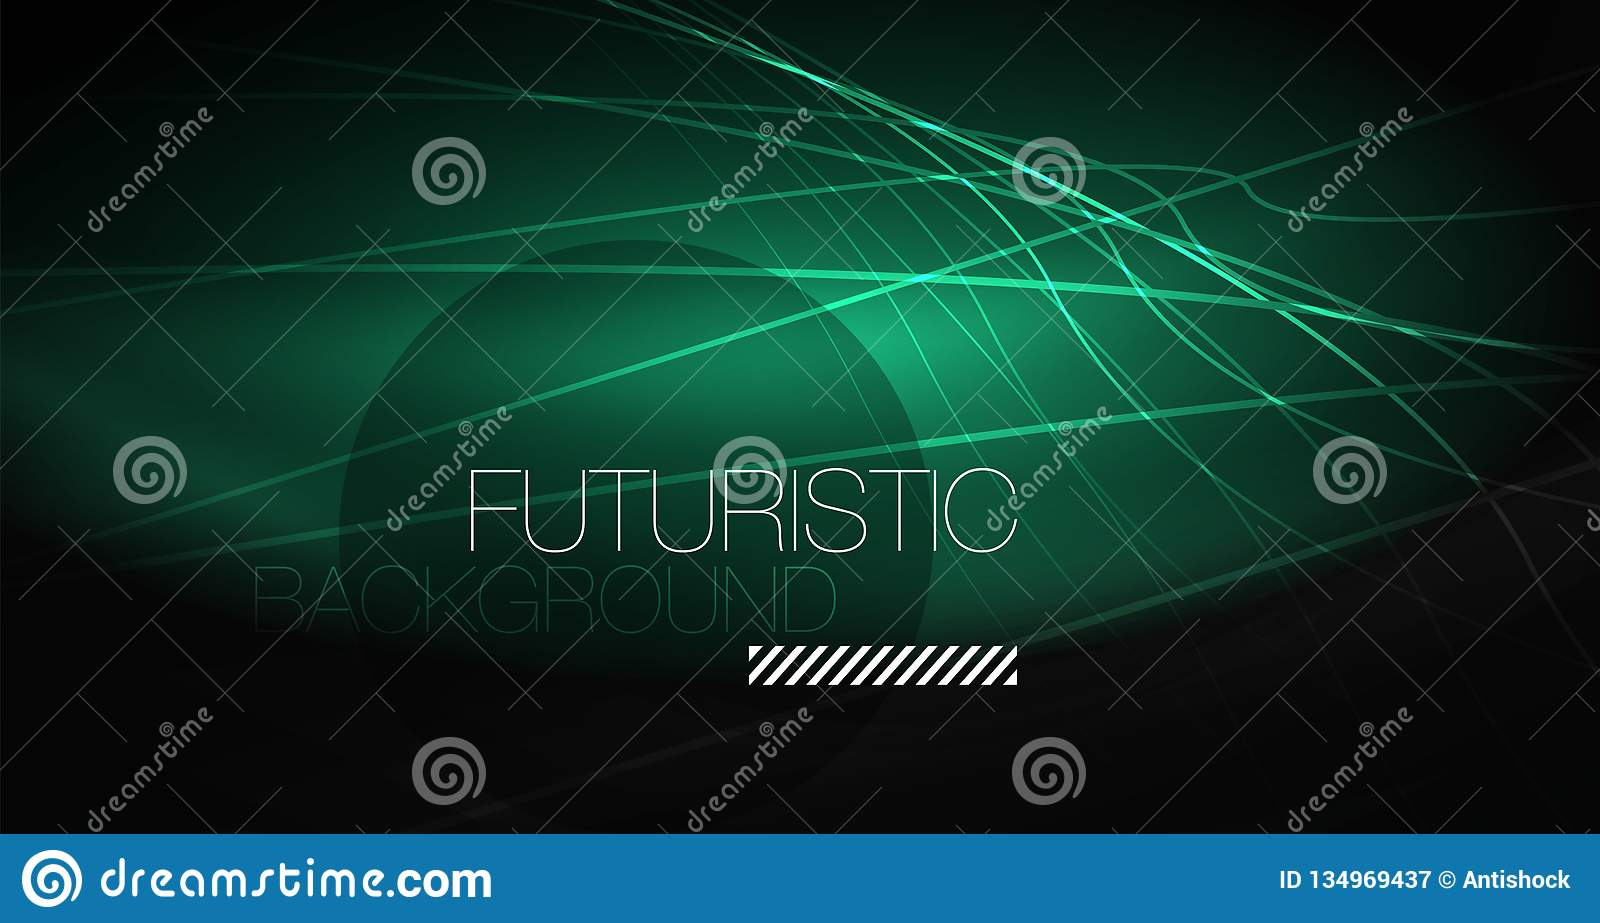 Digital technology abstract background - neon geometric design. Abstract glowing lines. Colorful techno background